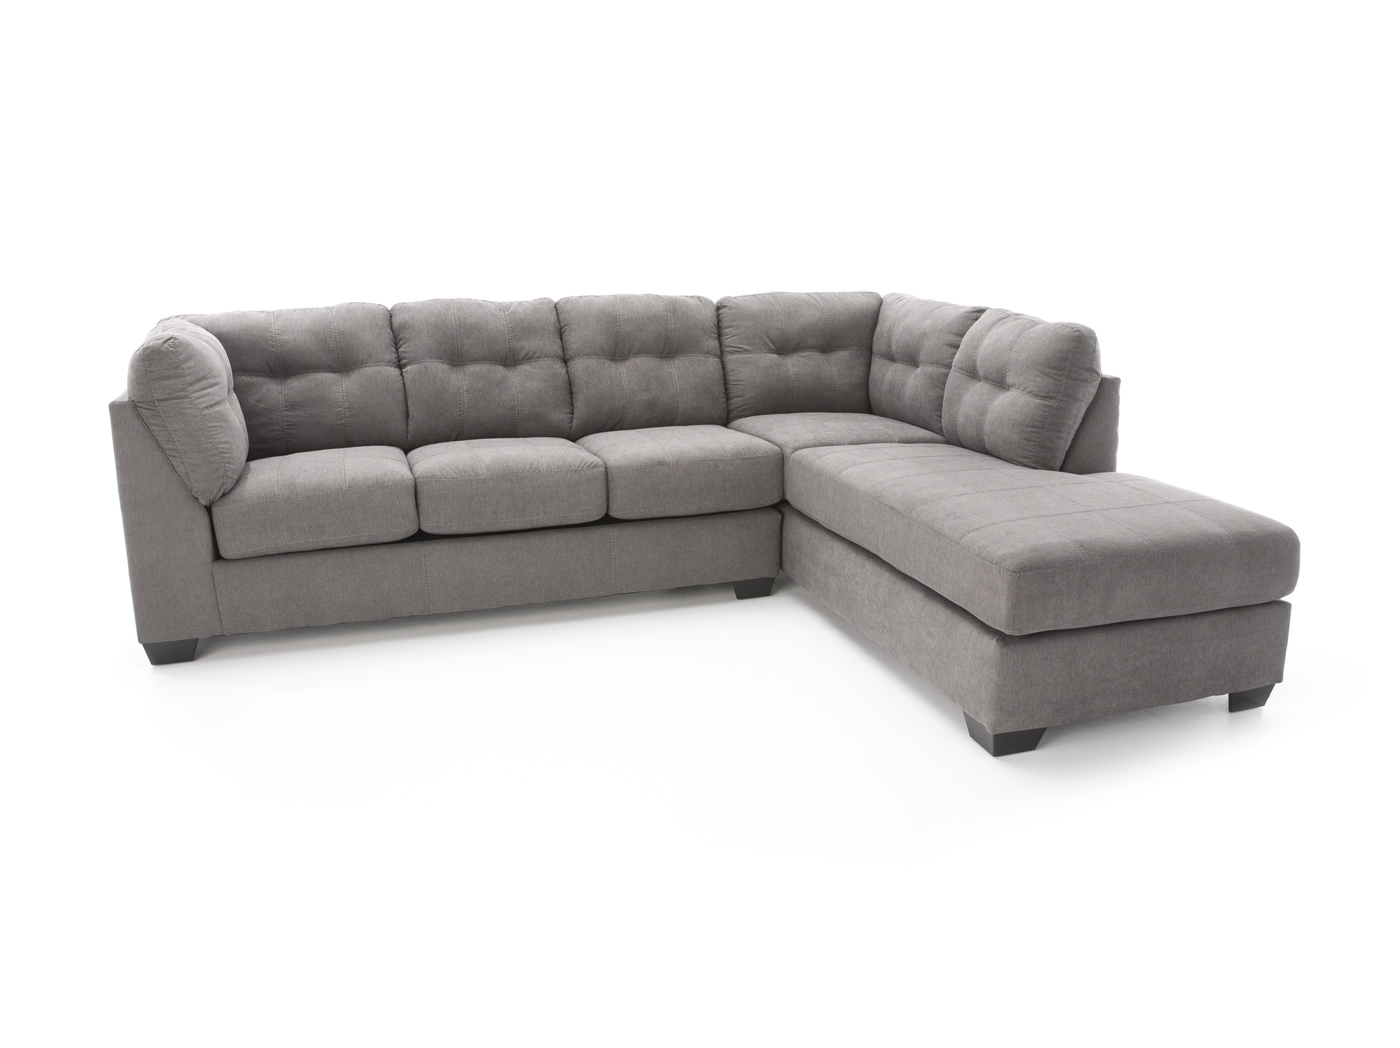 Living Room – Sectionals | Steinhafels Within Marissa Ii 3 Piece Sectionals (Image 8 of 25)